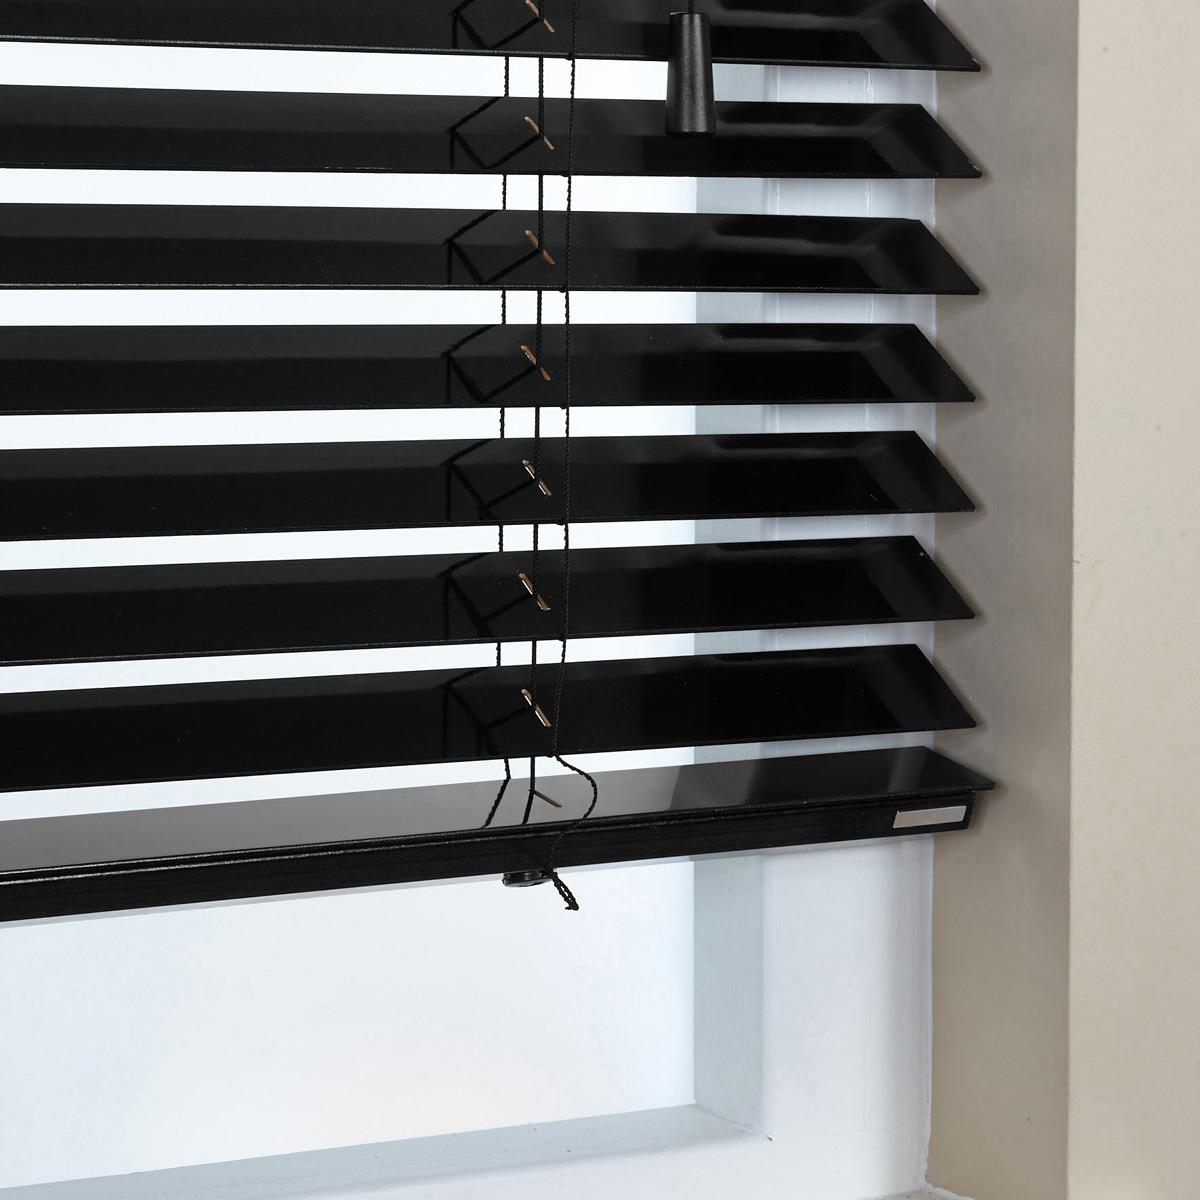 Browse Our Extensive Collection Of Window Blinds In A